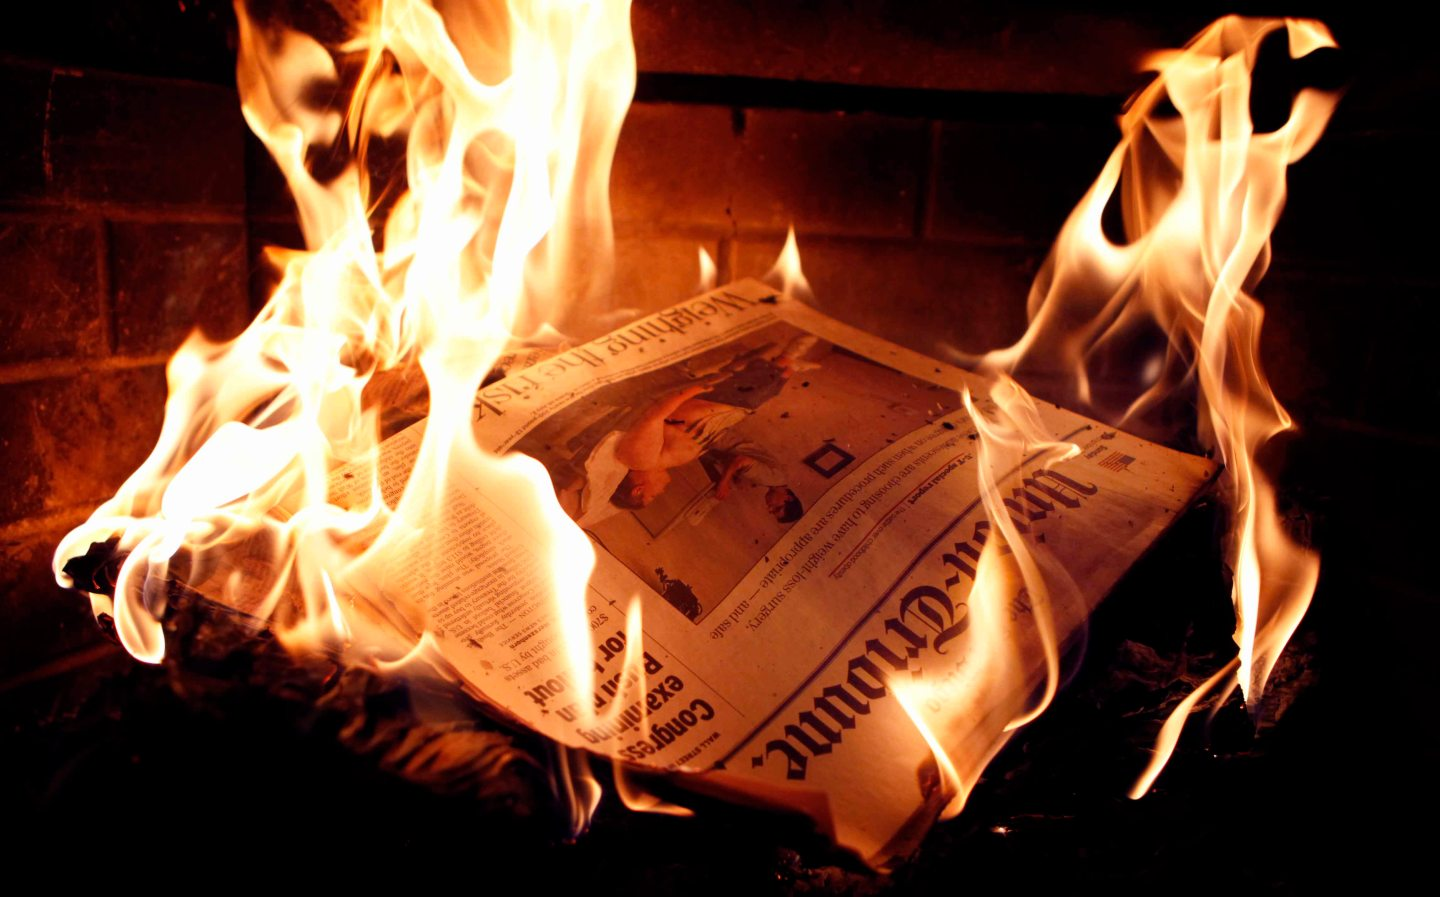 Are tablets killing the newspaperstar?